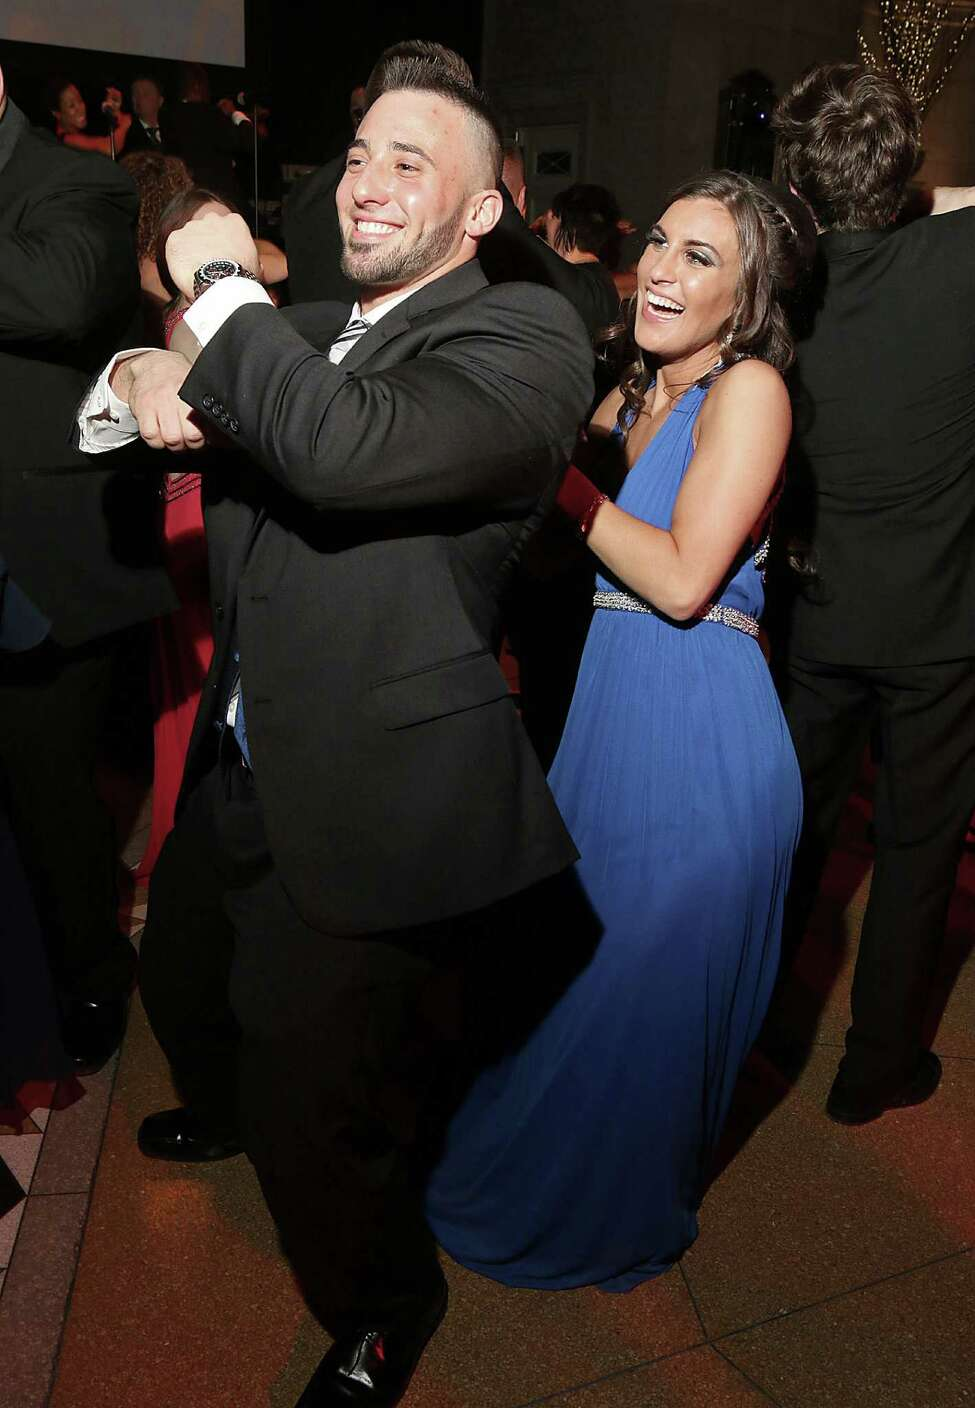 Were you Seen at the Make-A-Wish Northeast New York Gala at the Hall of Springs in Saratoga Springs on Saturday, March 28, 2015?